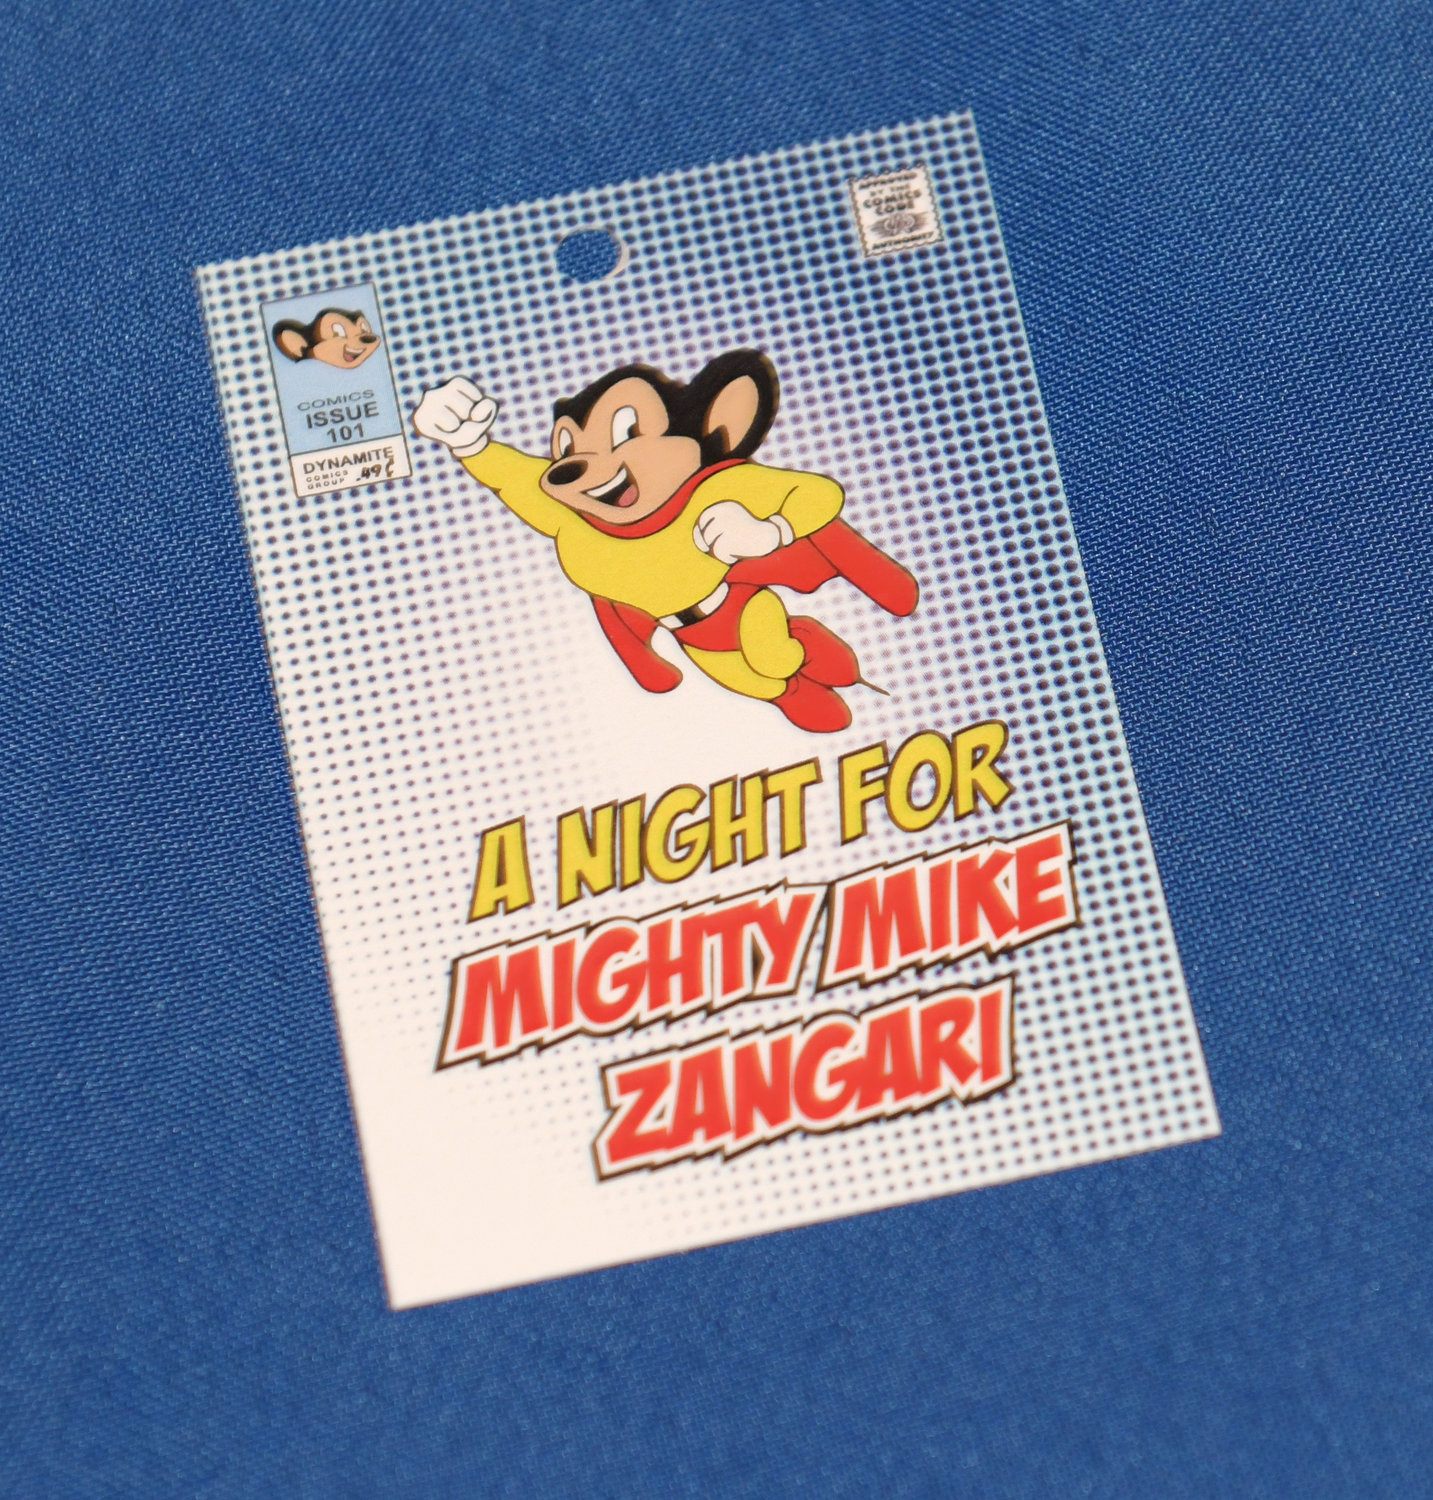 Mike Zangari is a big Mighty Mouse fan.